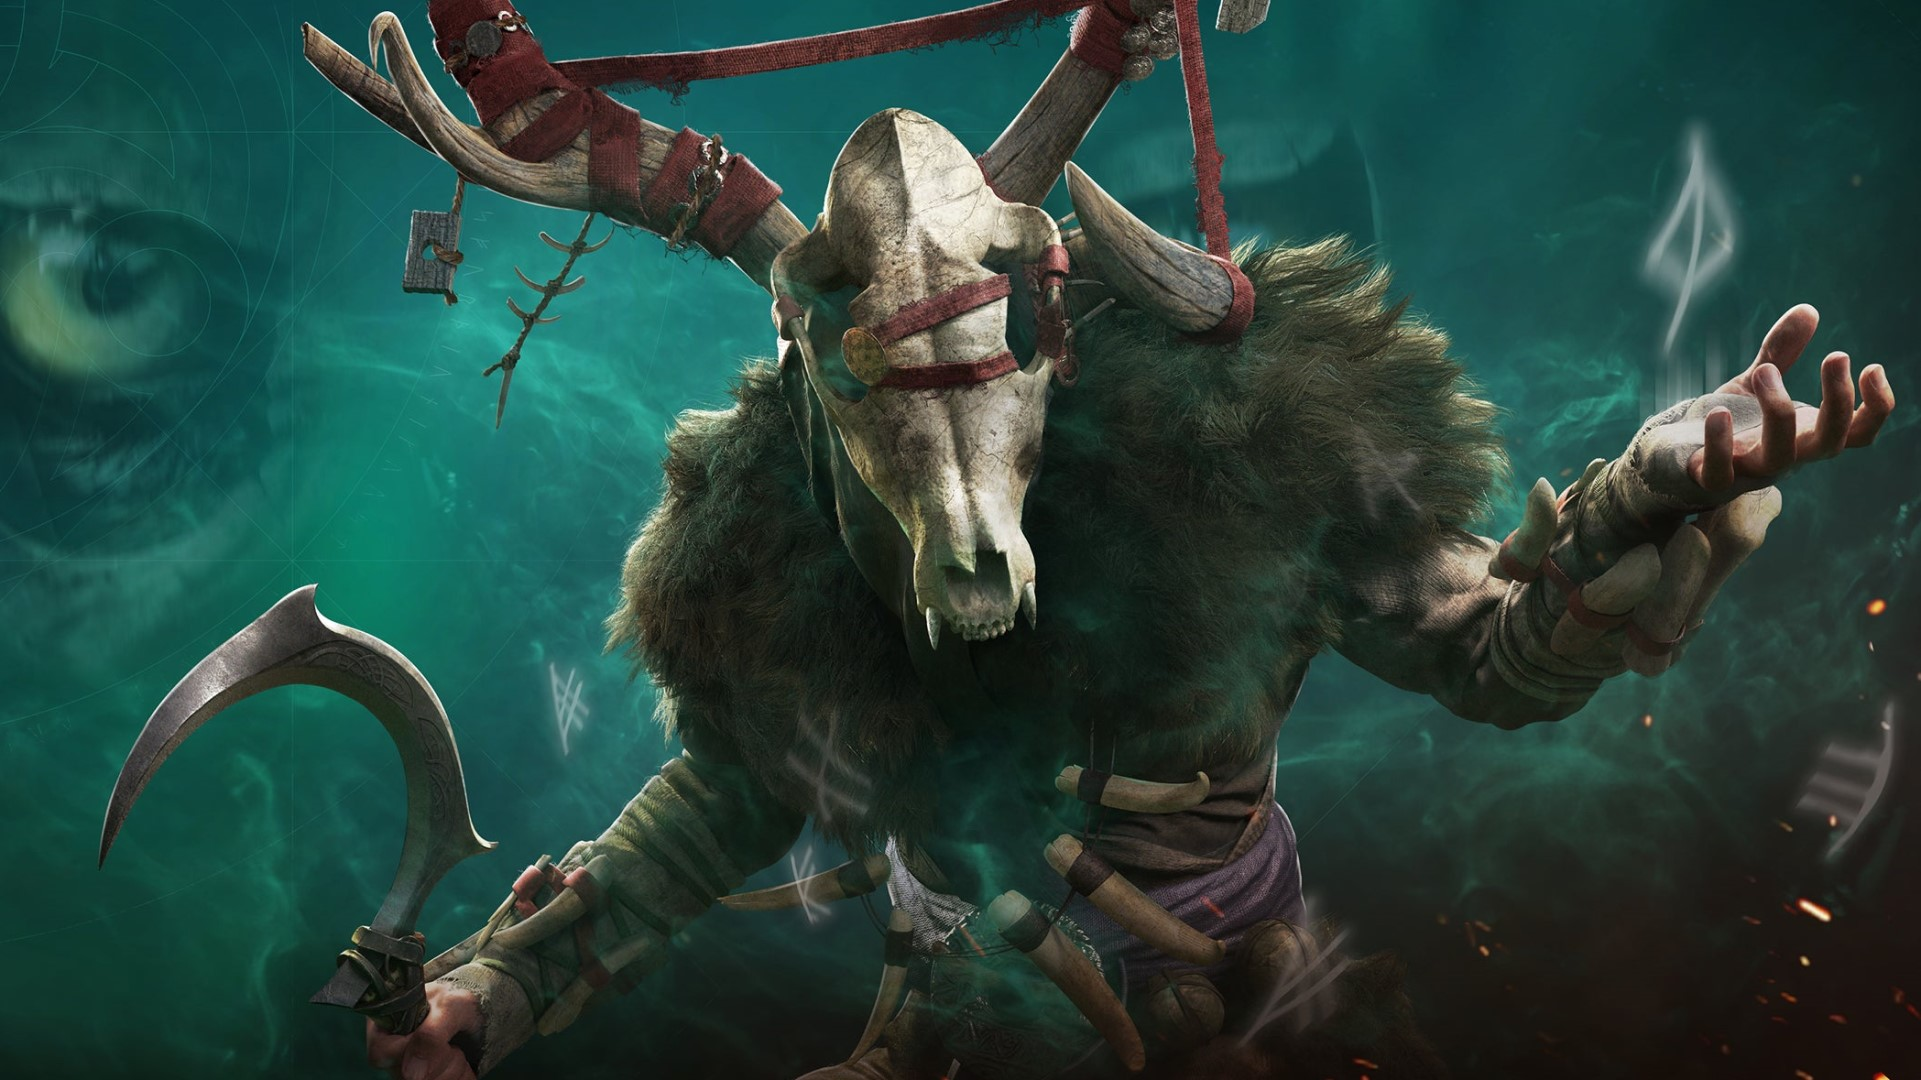 Assassin's Creed Valhalla: Wrath of the Druids DLC release time confirmed